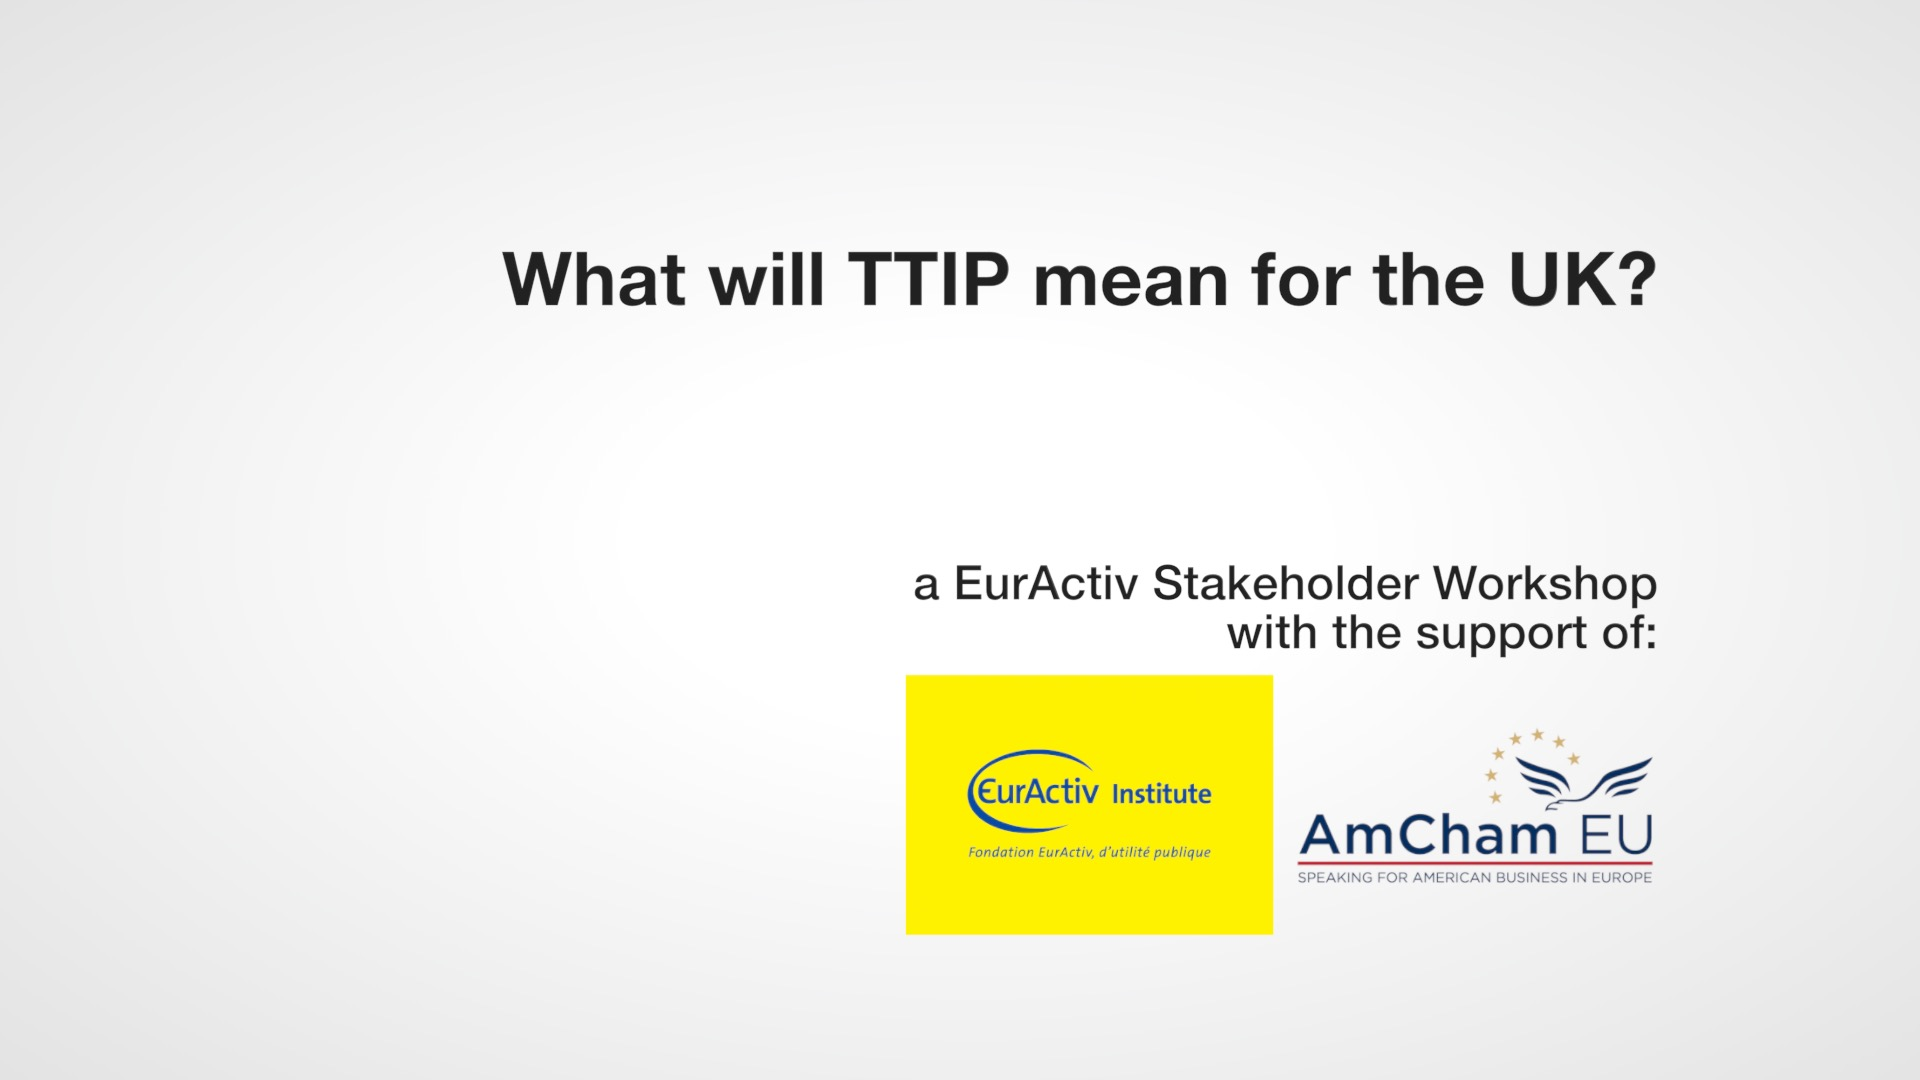 What will TTIP mean for the UK?